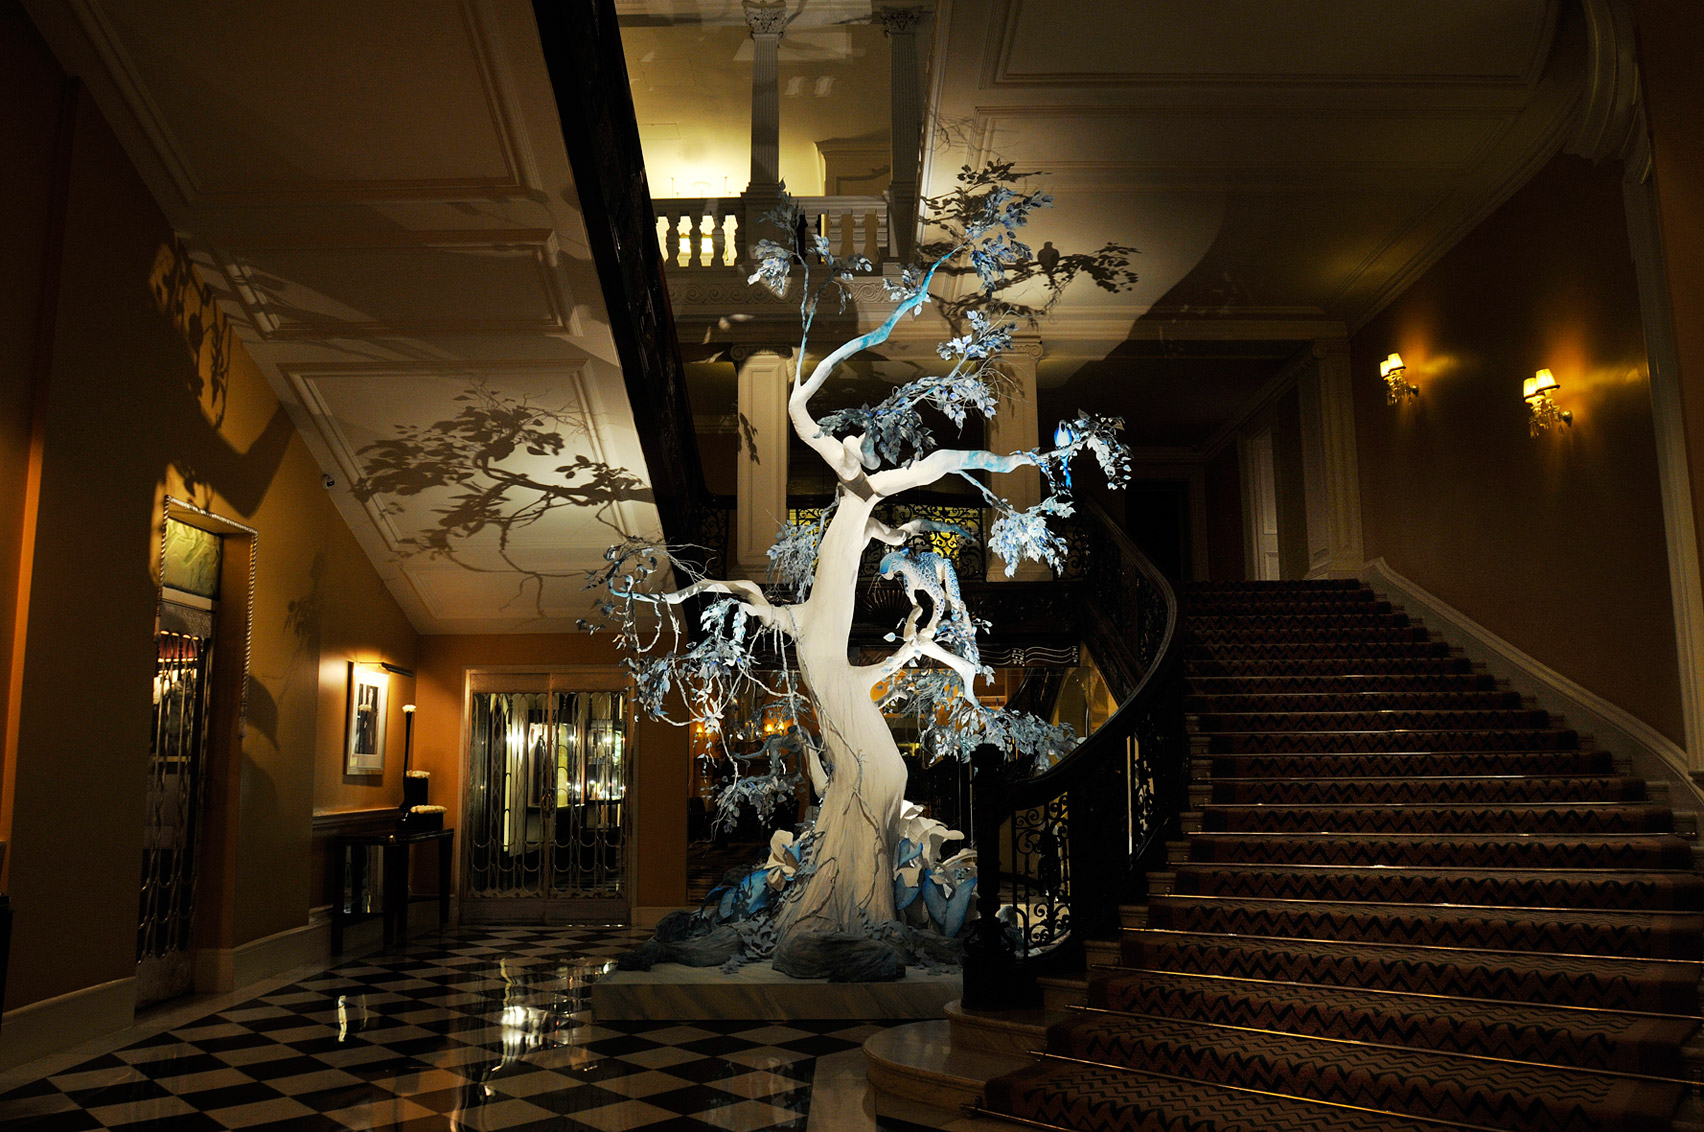 jony-ive-marc-newson-design-christmas-tree-claridges-hotel-london-uk-news_dezeen_1704_col_7